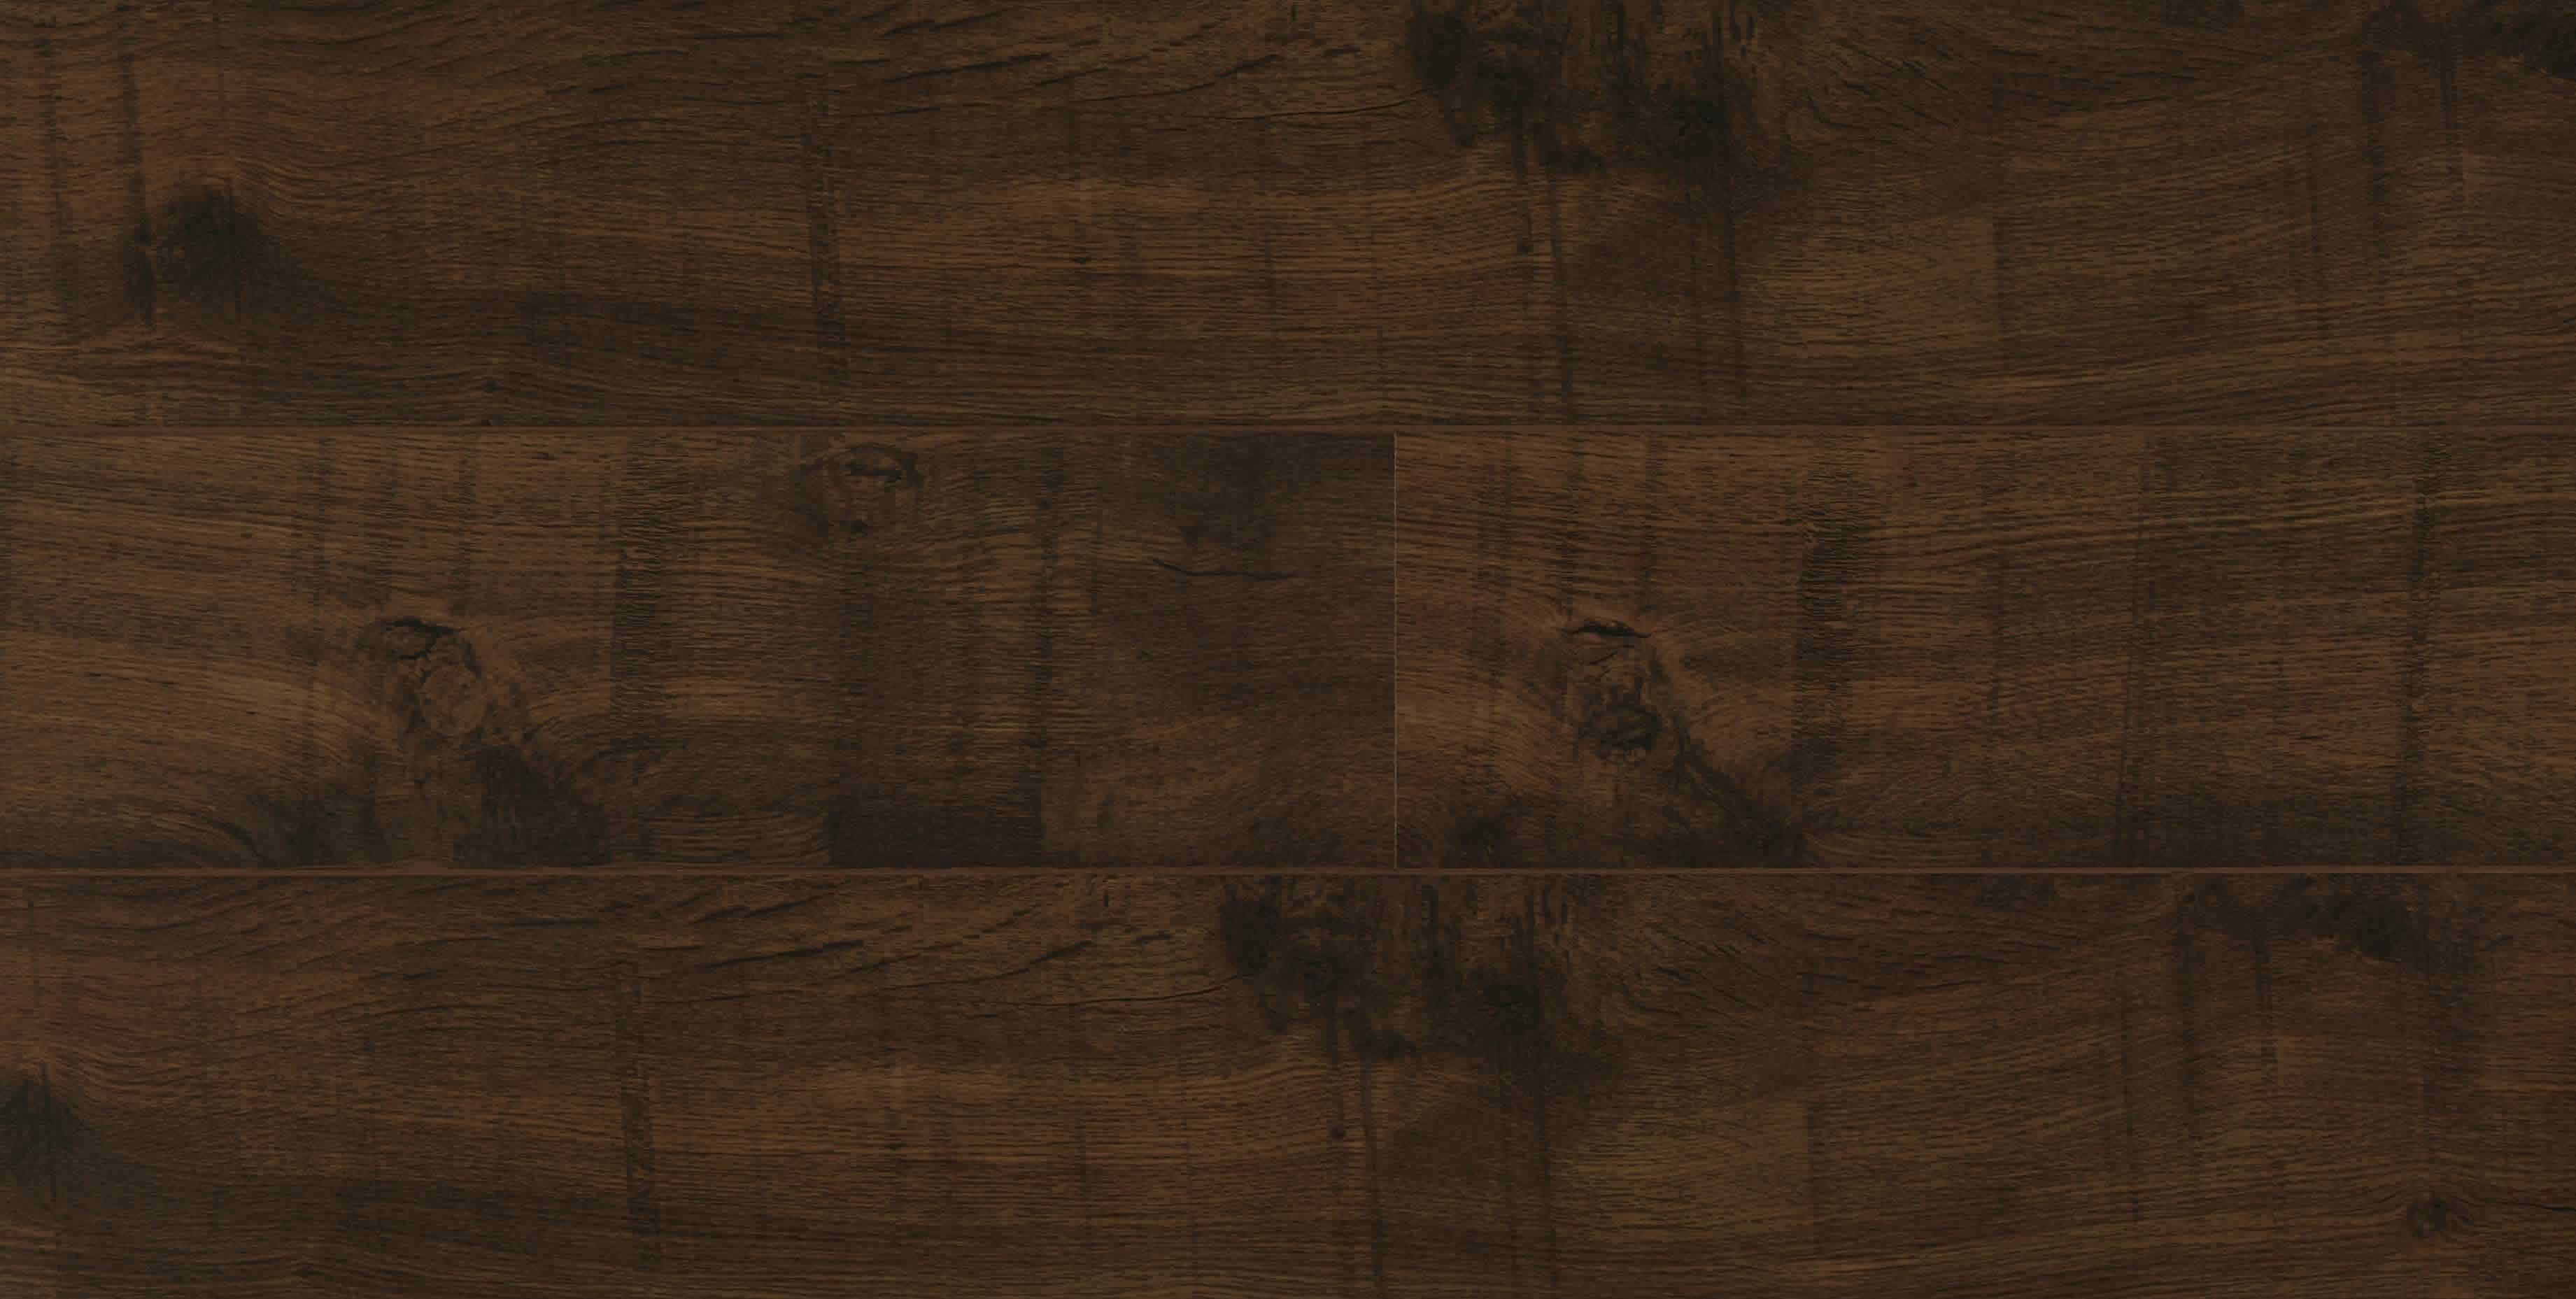 Wood Background Image 183 ① Download Free Wallpapers For